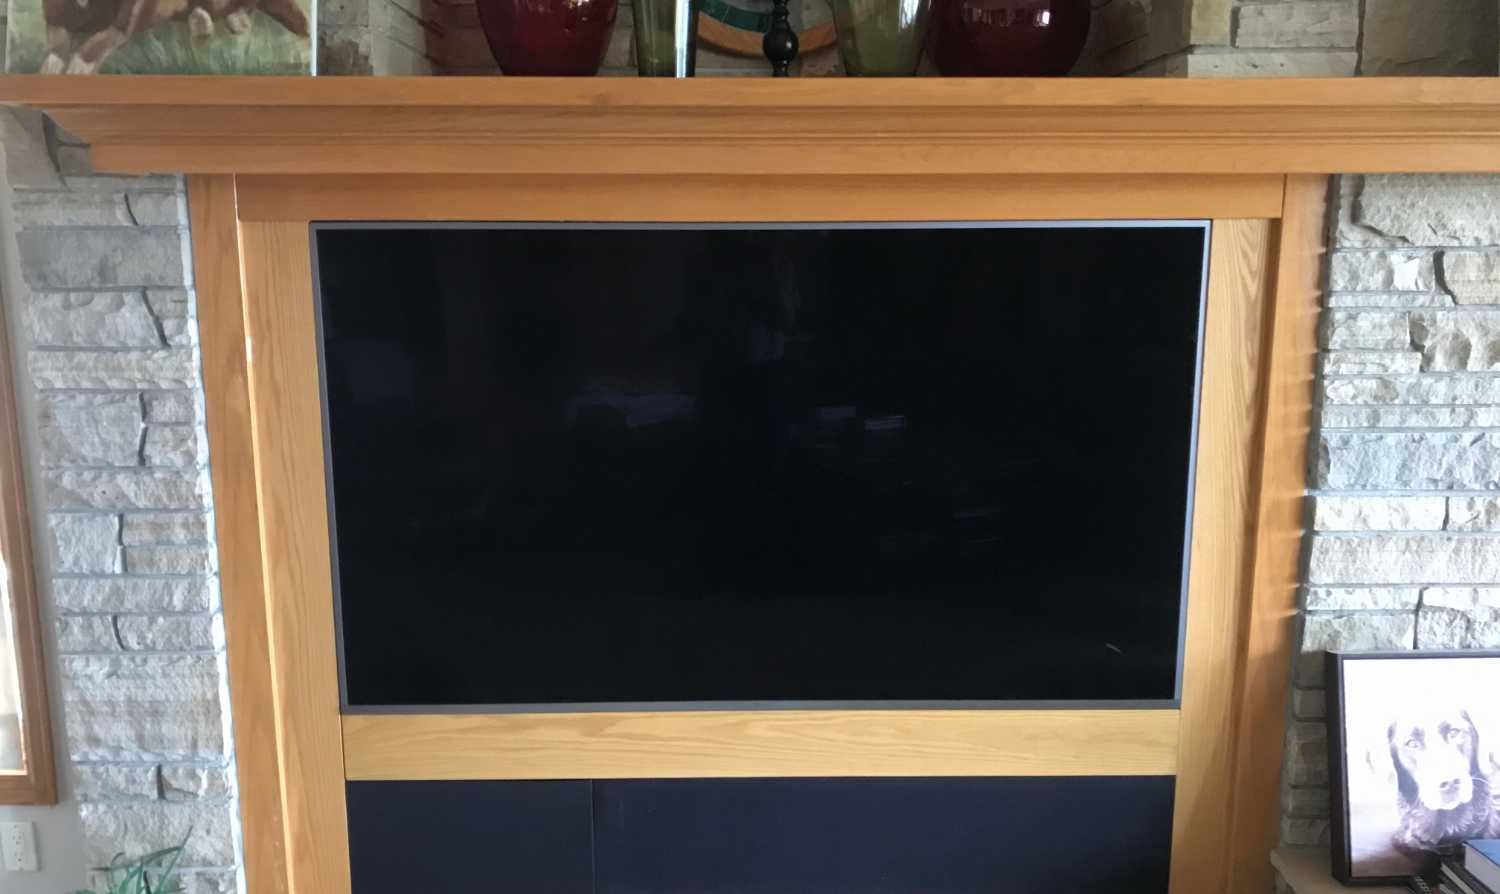 Built-in Cabinet Updated with New Technology